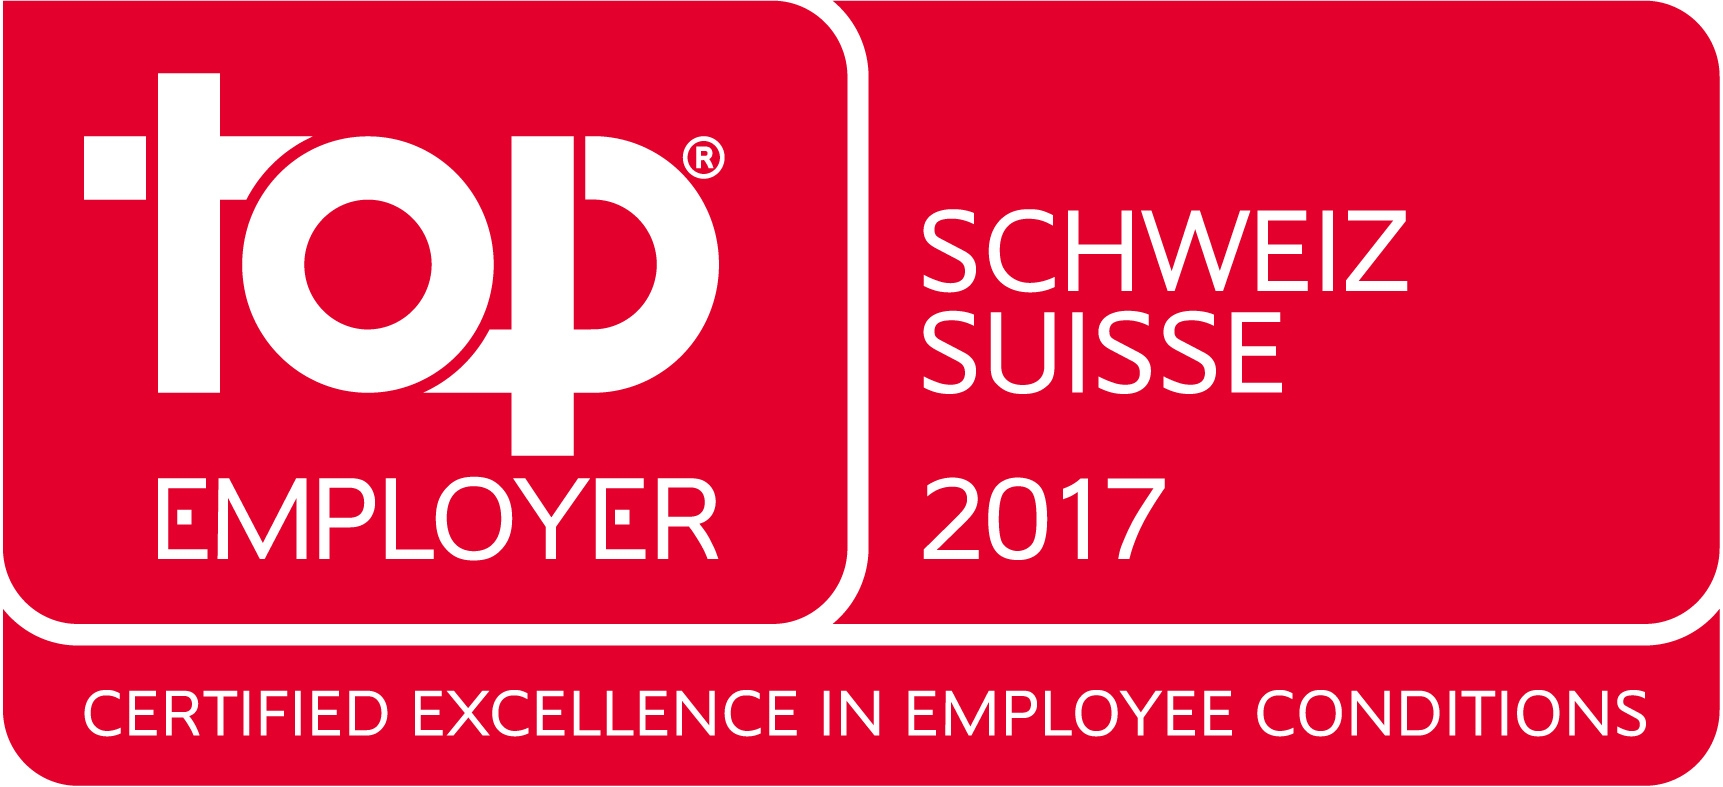 Top_Employer_Switzerland_2017.jpg